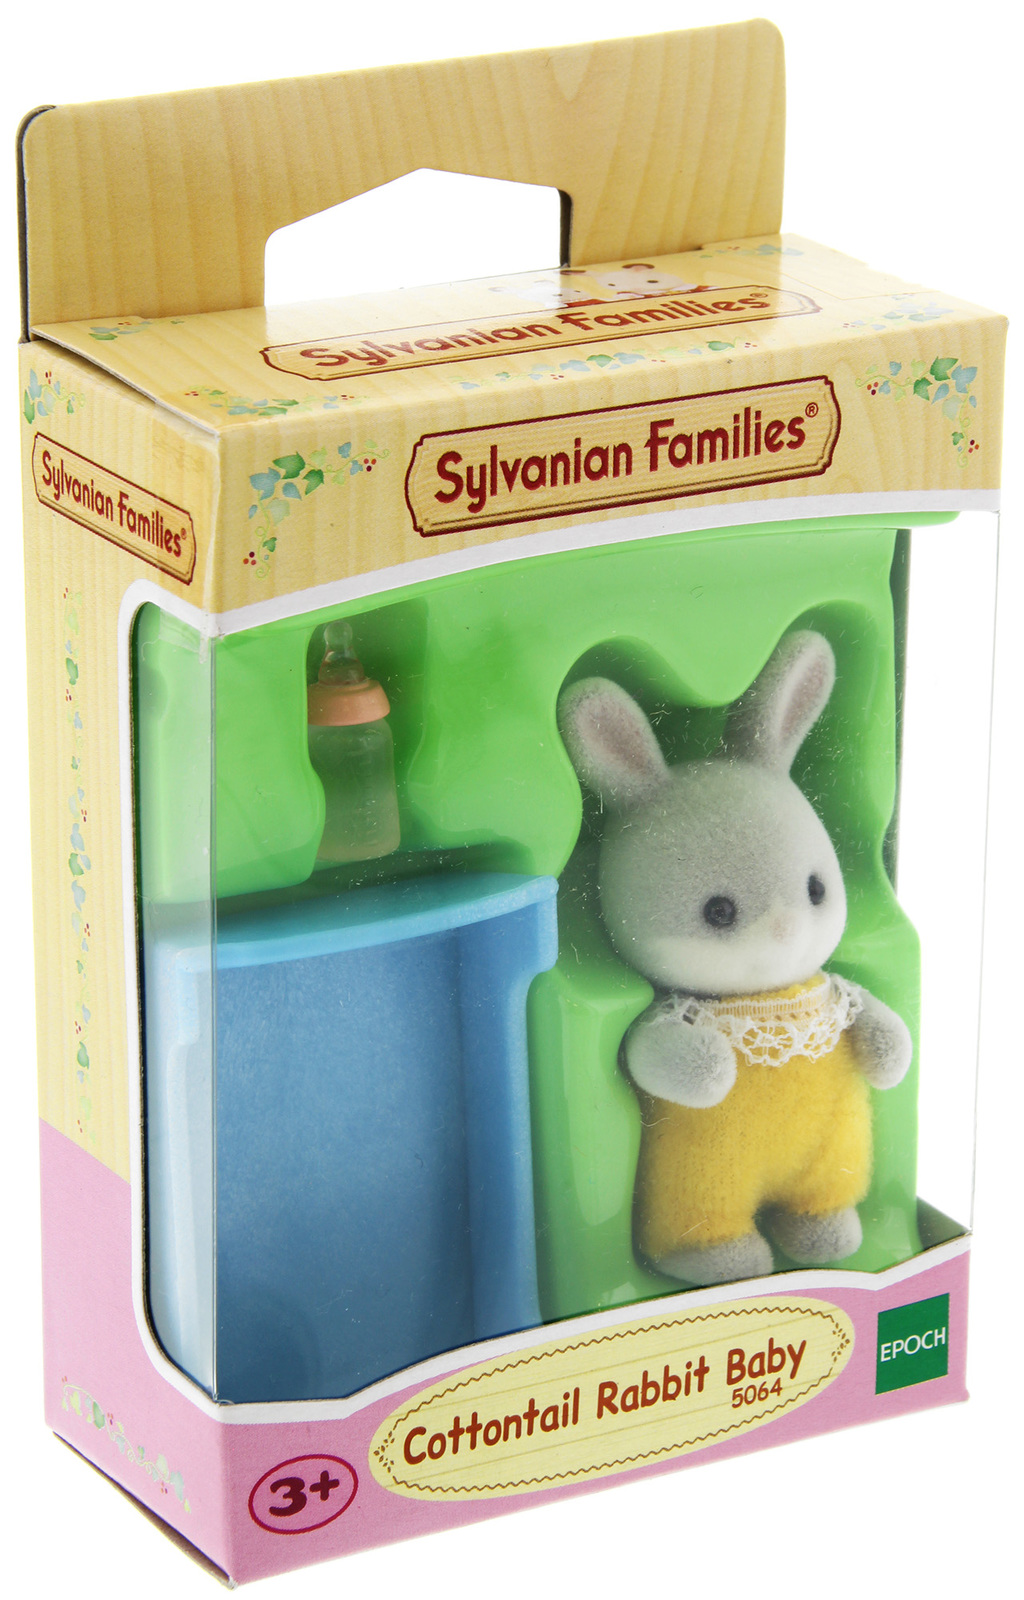 Sylvanian Families: Cottontail Rabbit Baby - Yellow Charlie image